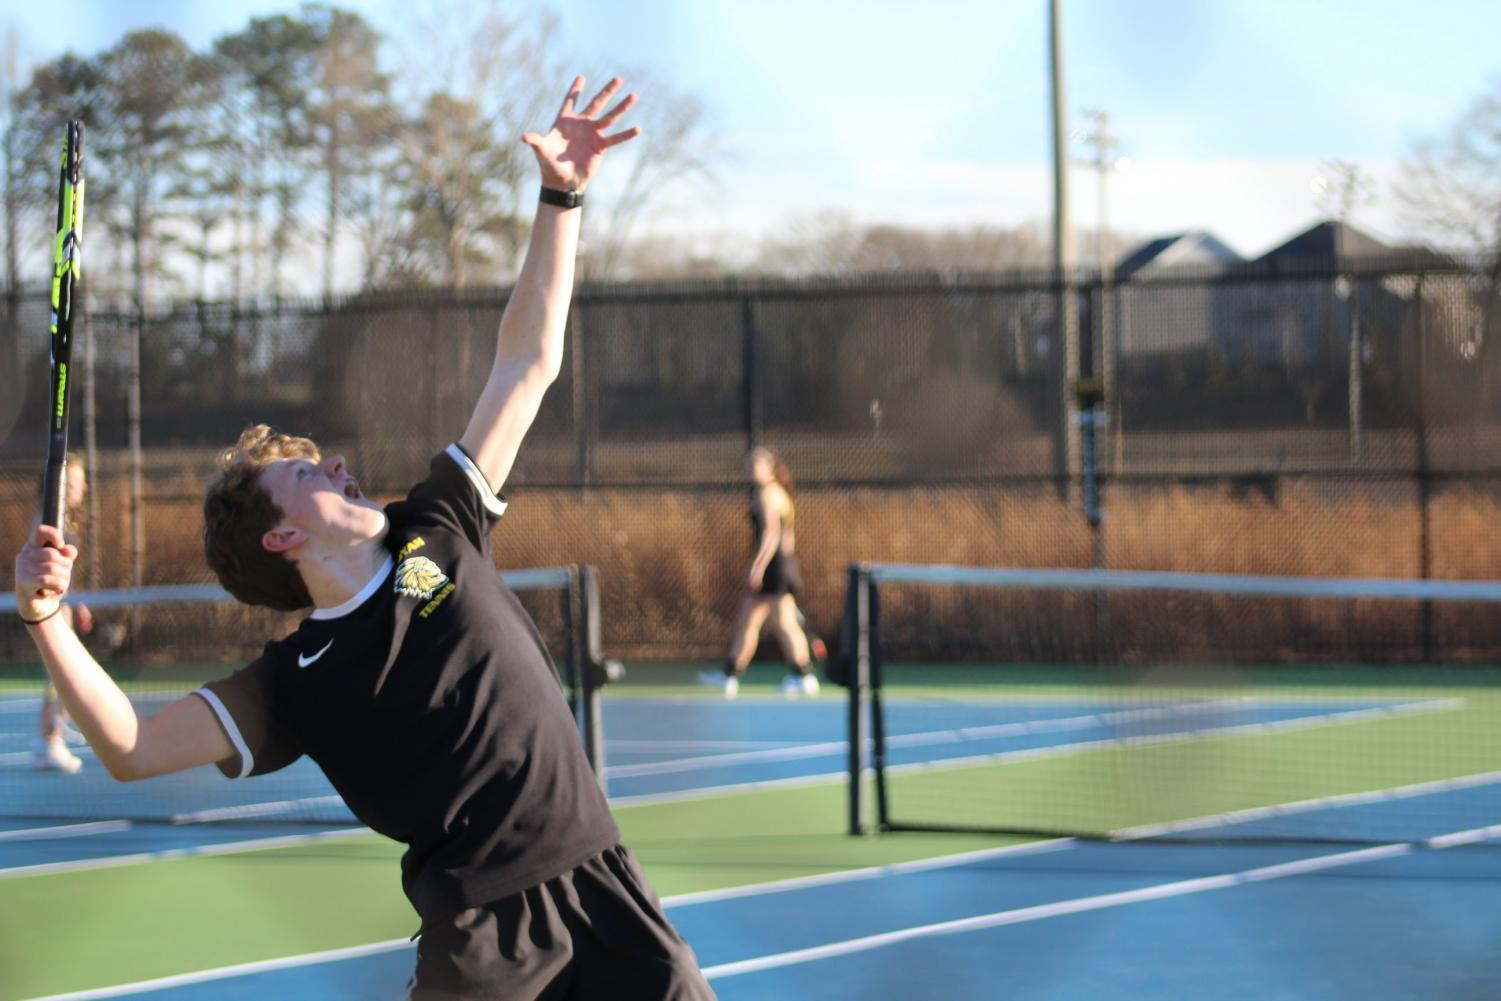 Bailey throws the tennis ball in the air to serve the first round of the match. He made it to State his sophomore year.